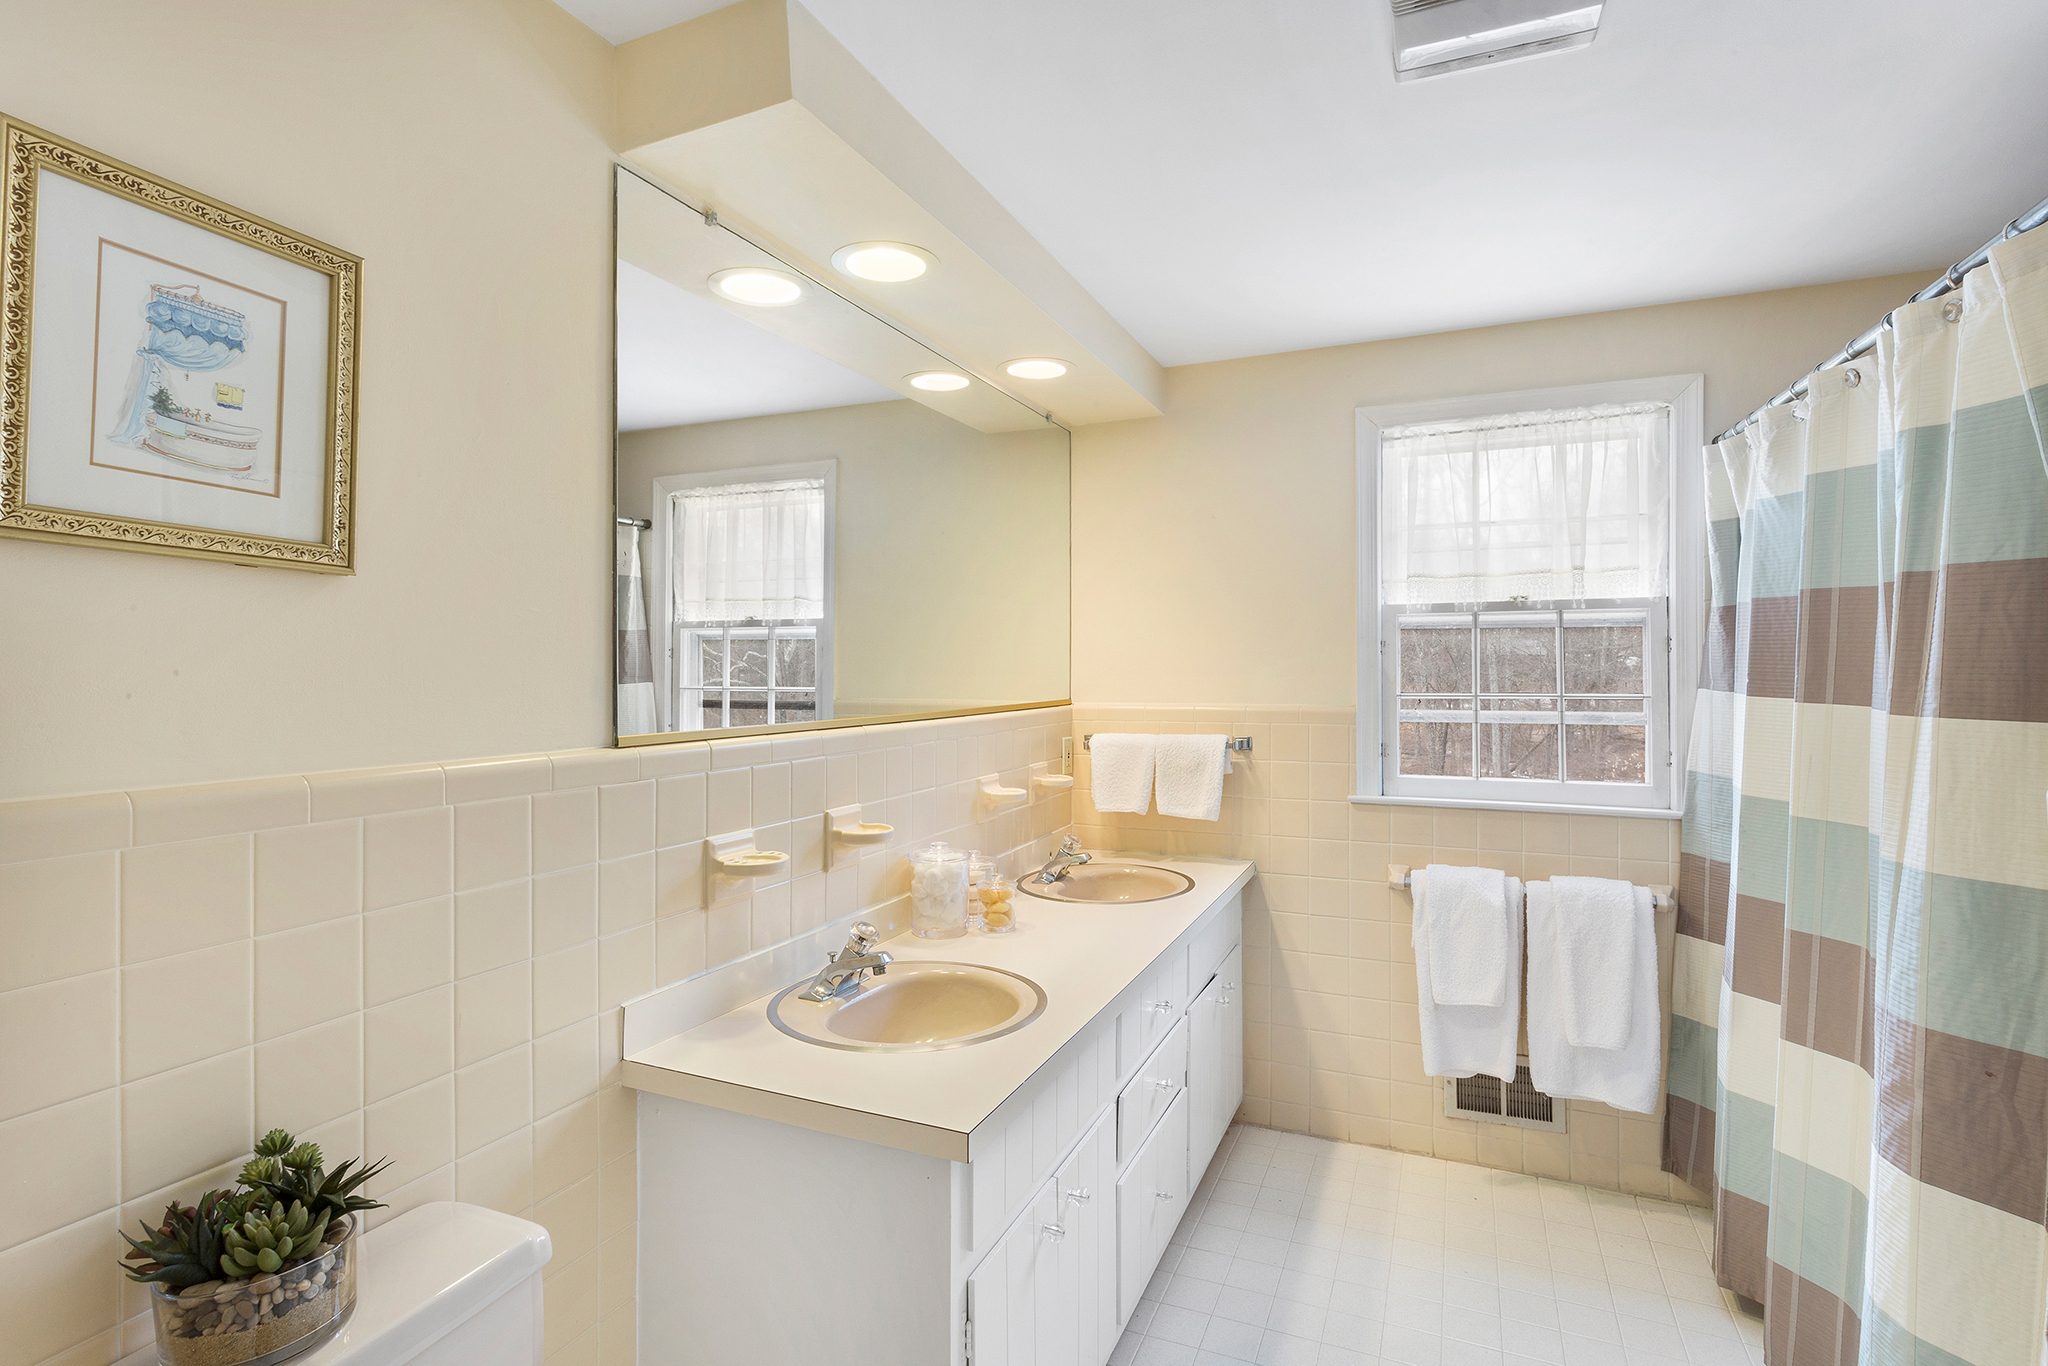 17 14 Keats Road Tewksbury Township — Hall Bathroom